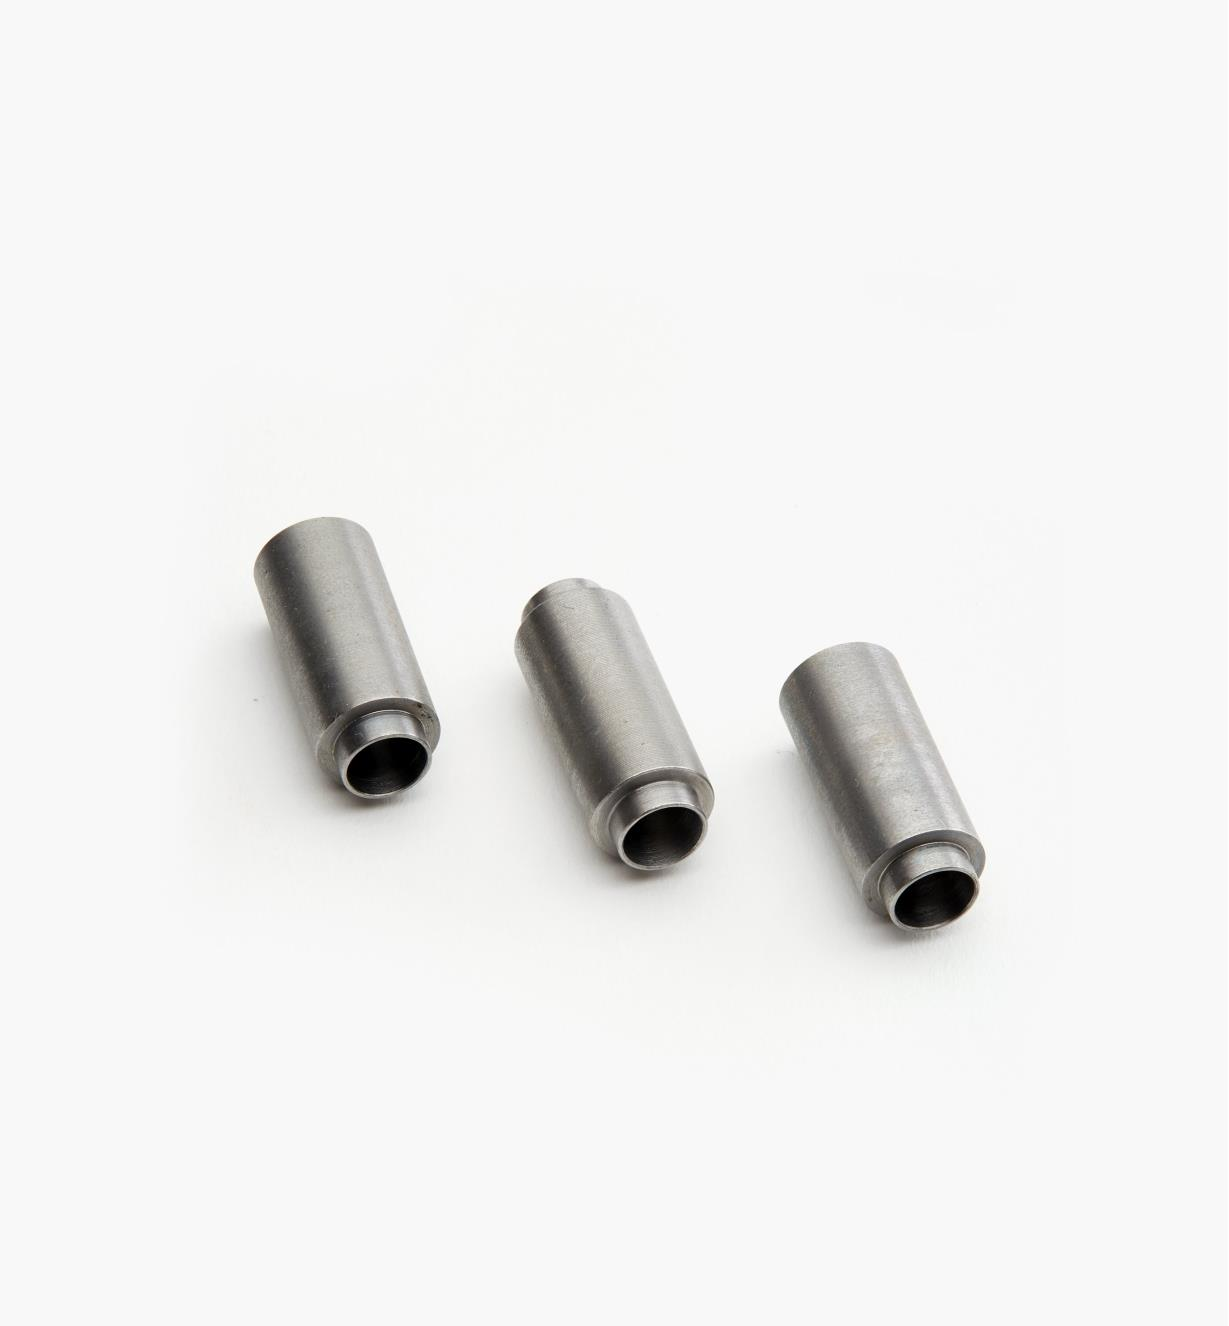 88K7107 - Perfume Applicator Bushings,set of 3